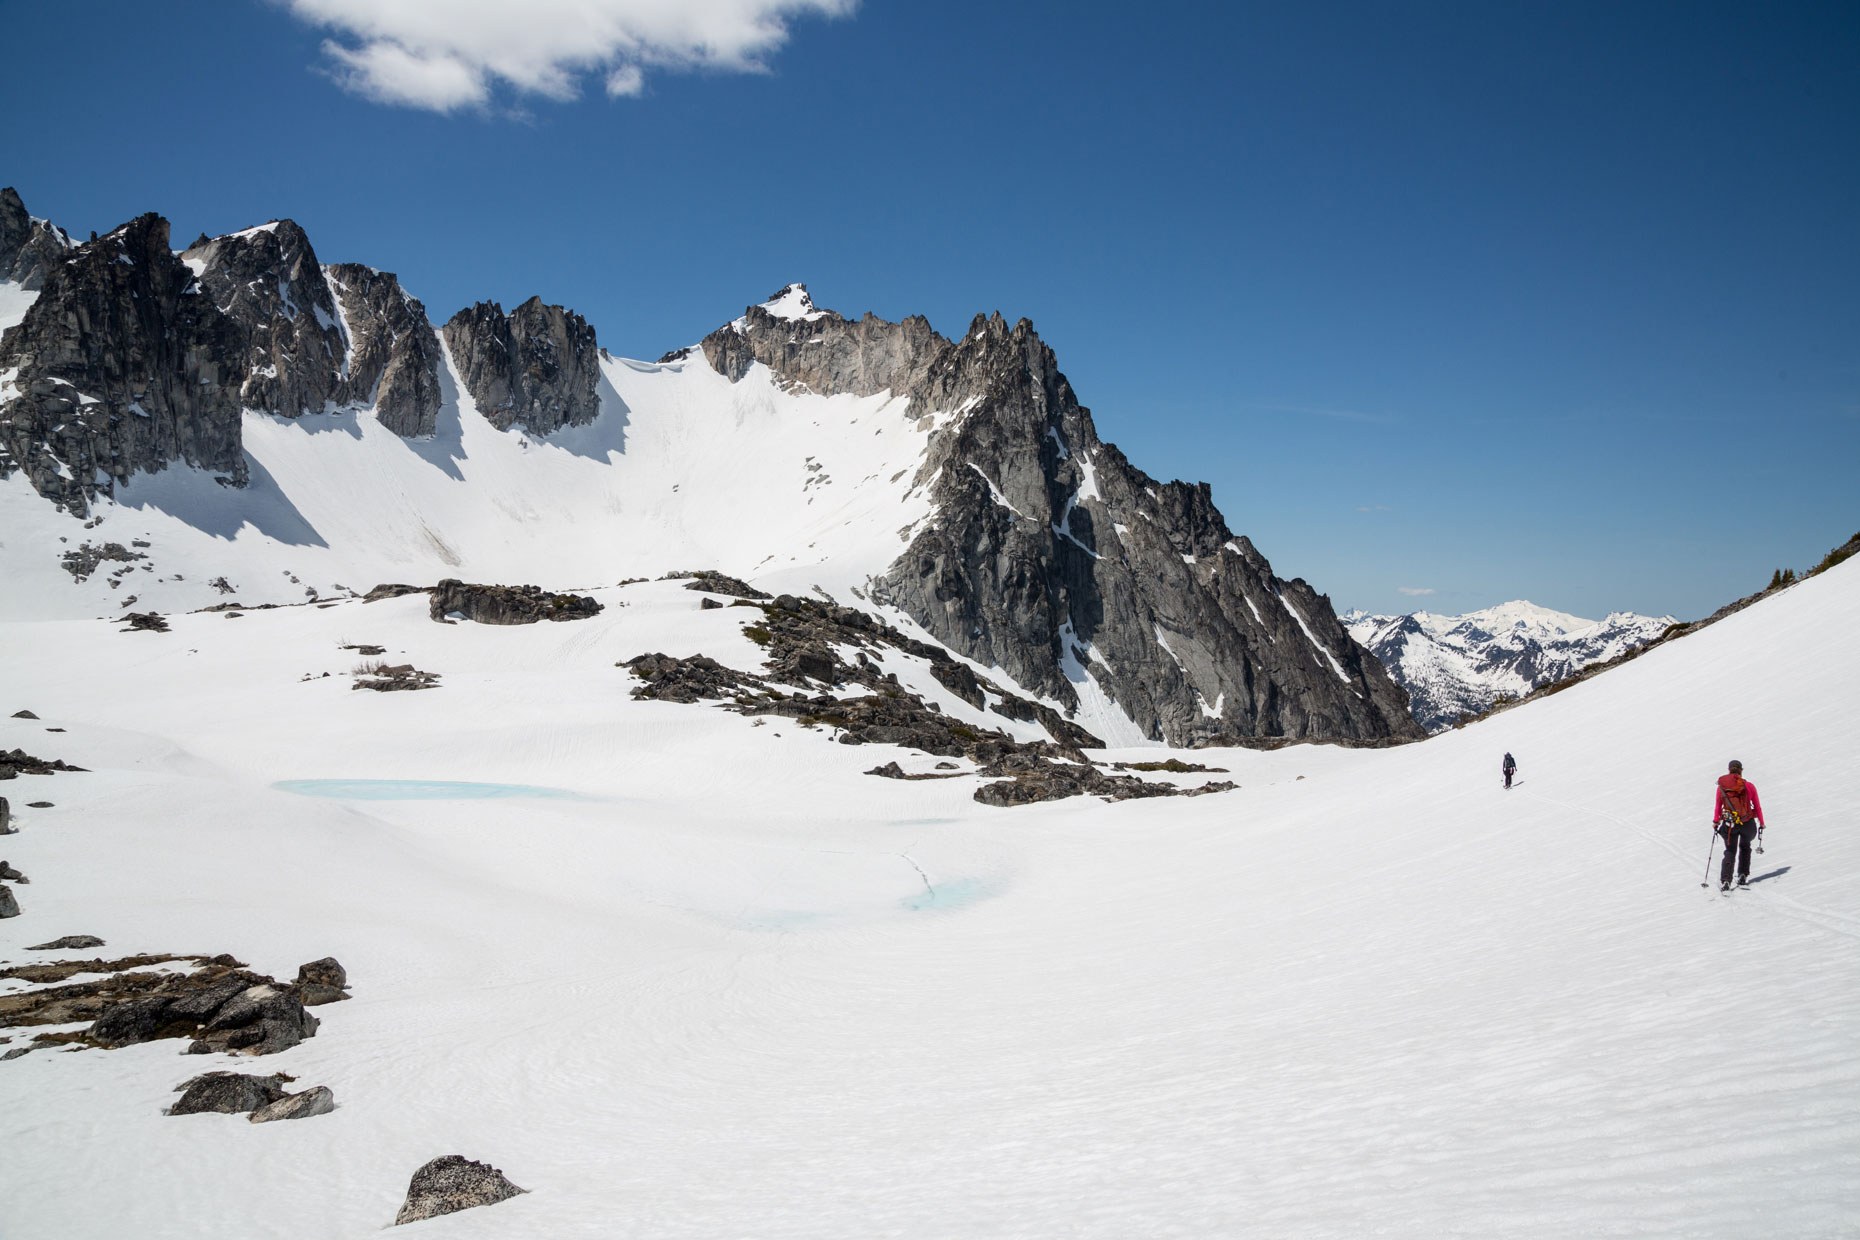 Skiing the Enchantments